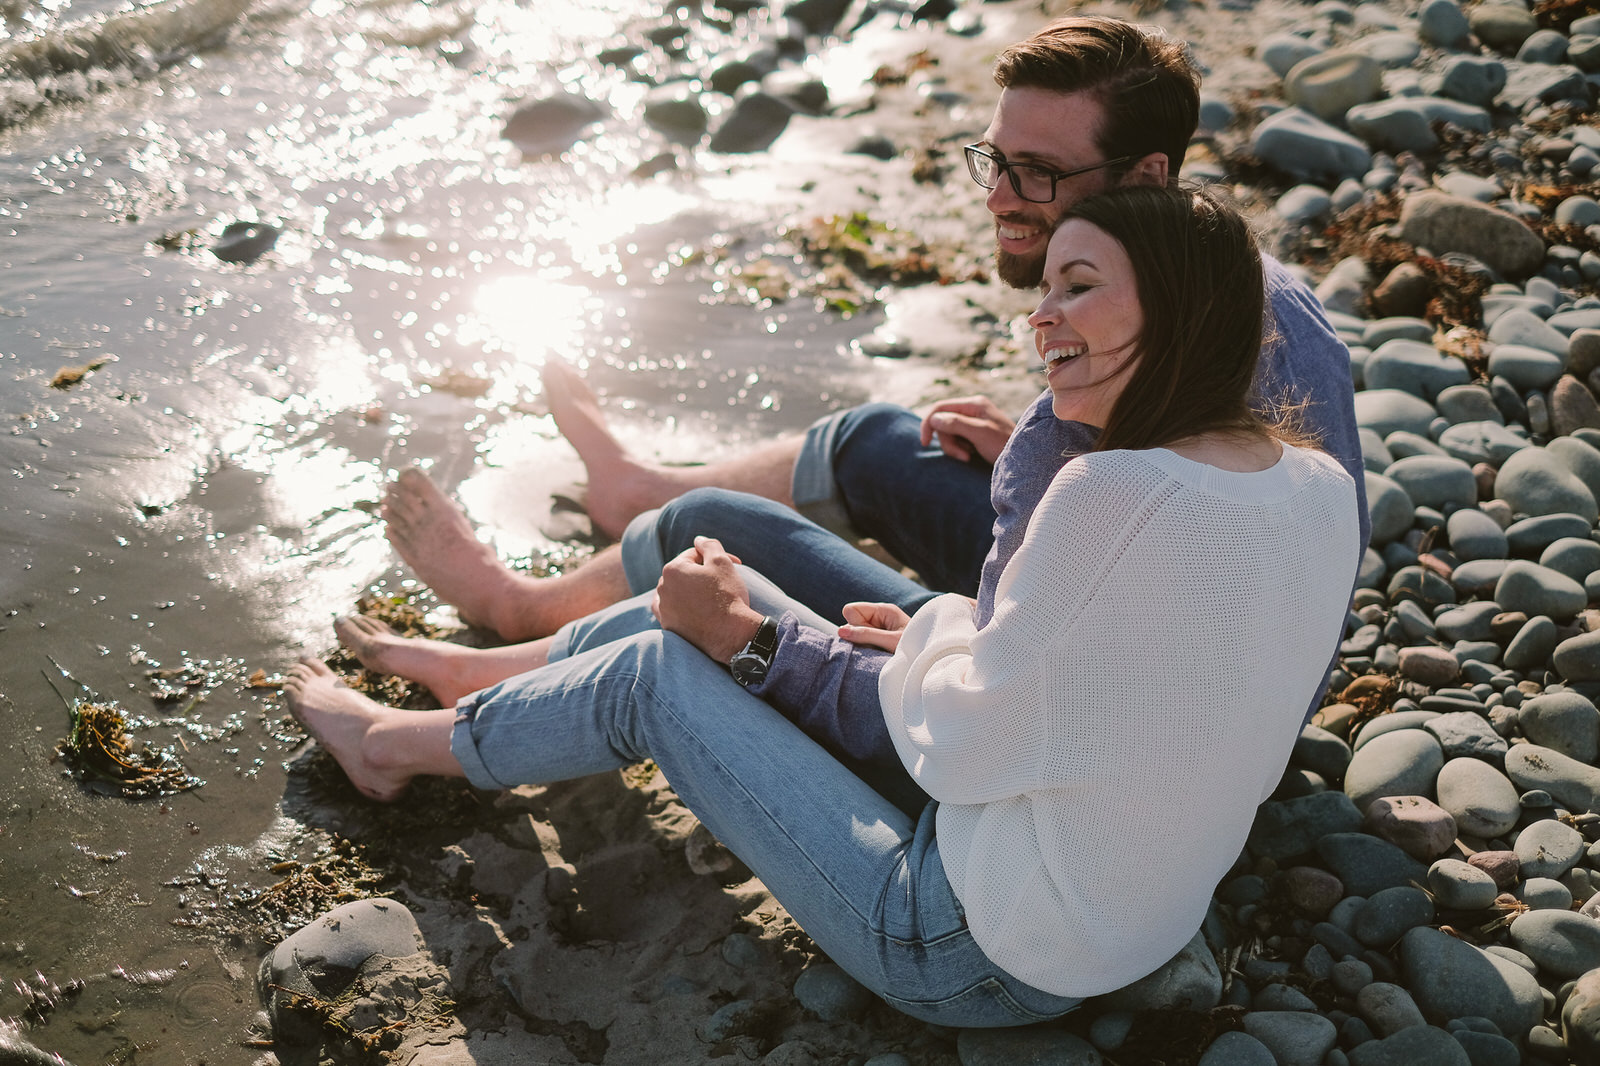 Engagement photos taken in Eastern Passage, Nova Scotia by Halifax Wedding Photographer Evan McMaster.